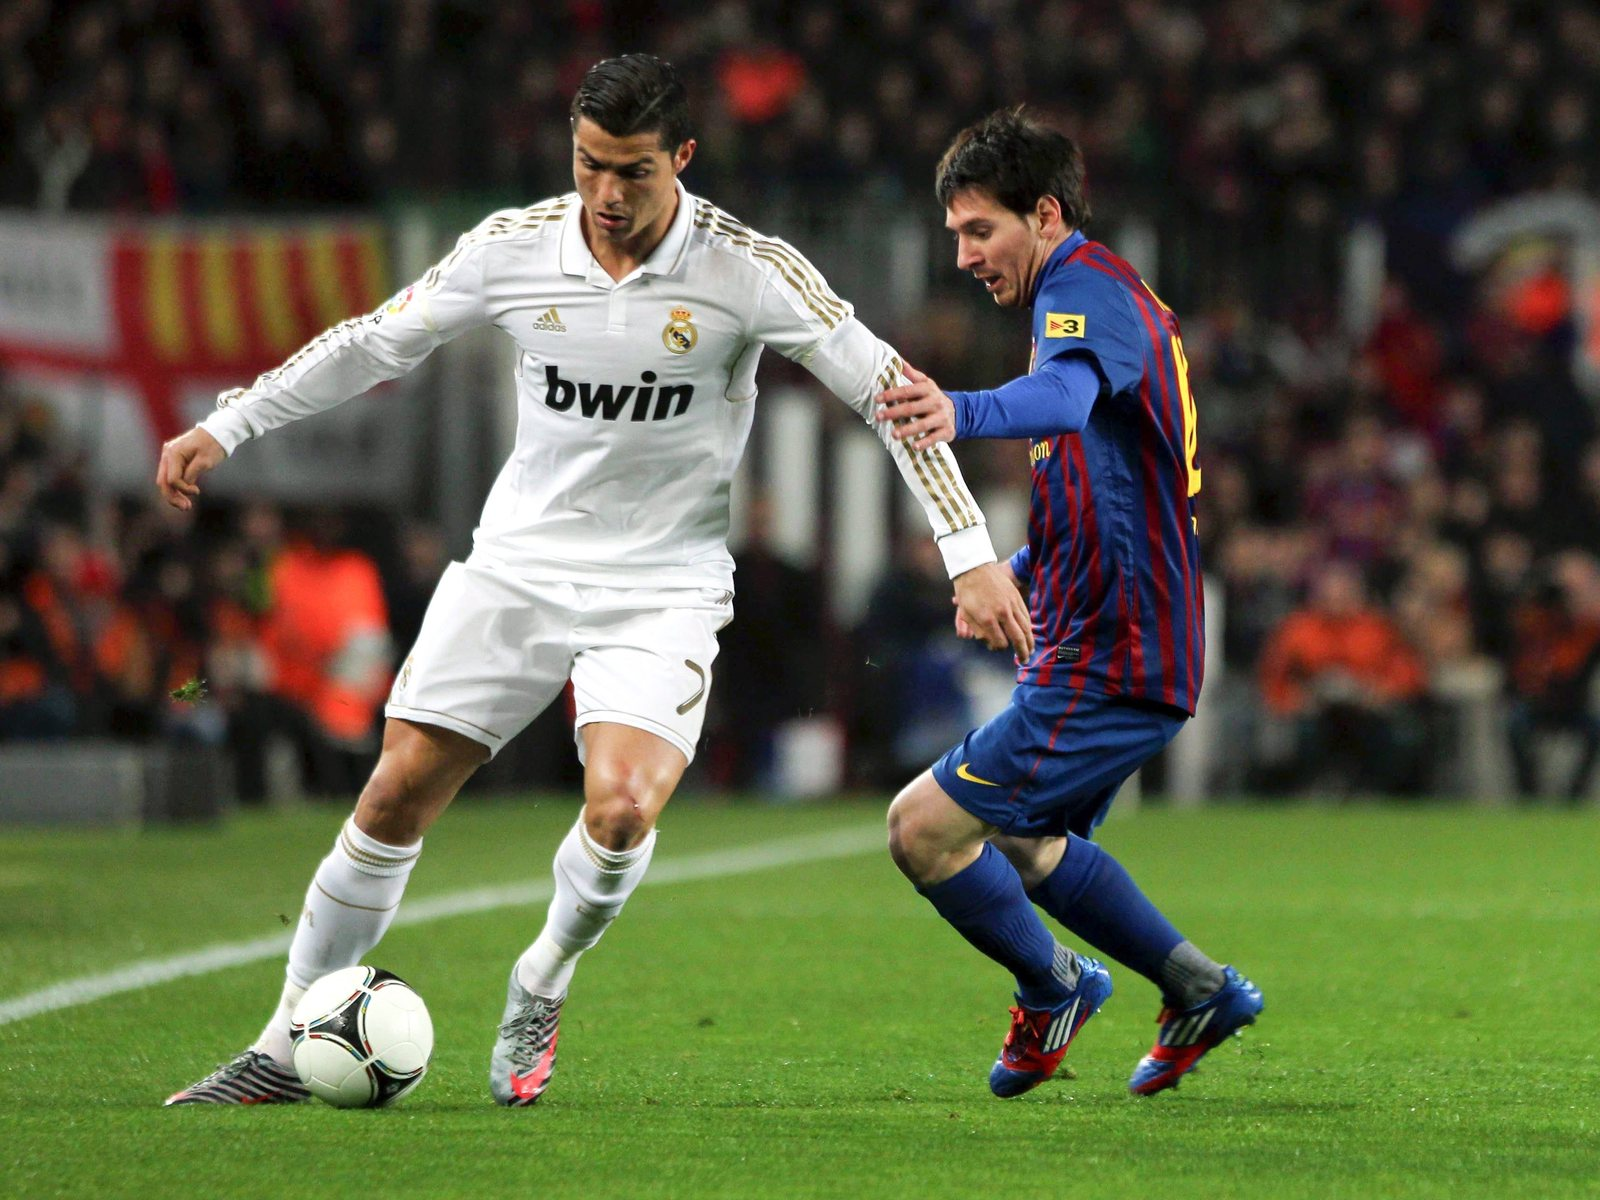 2012 13 ronaldo vs messi wallpaper 2012 13 ronaldo vs messi wallpaper    Messi Vs Ronaldo